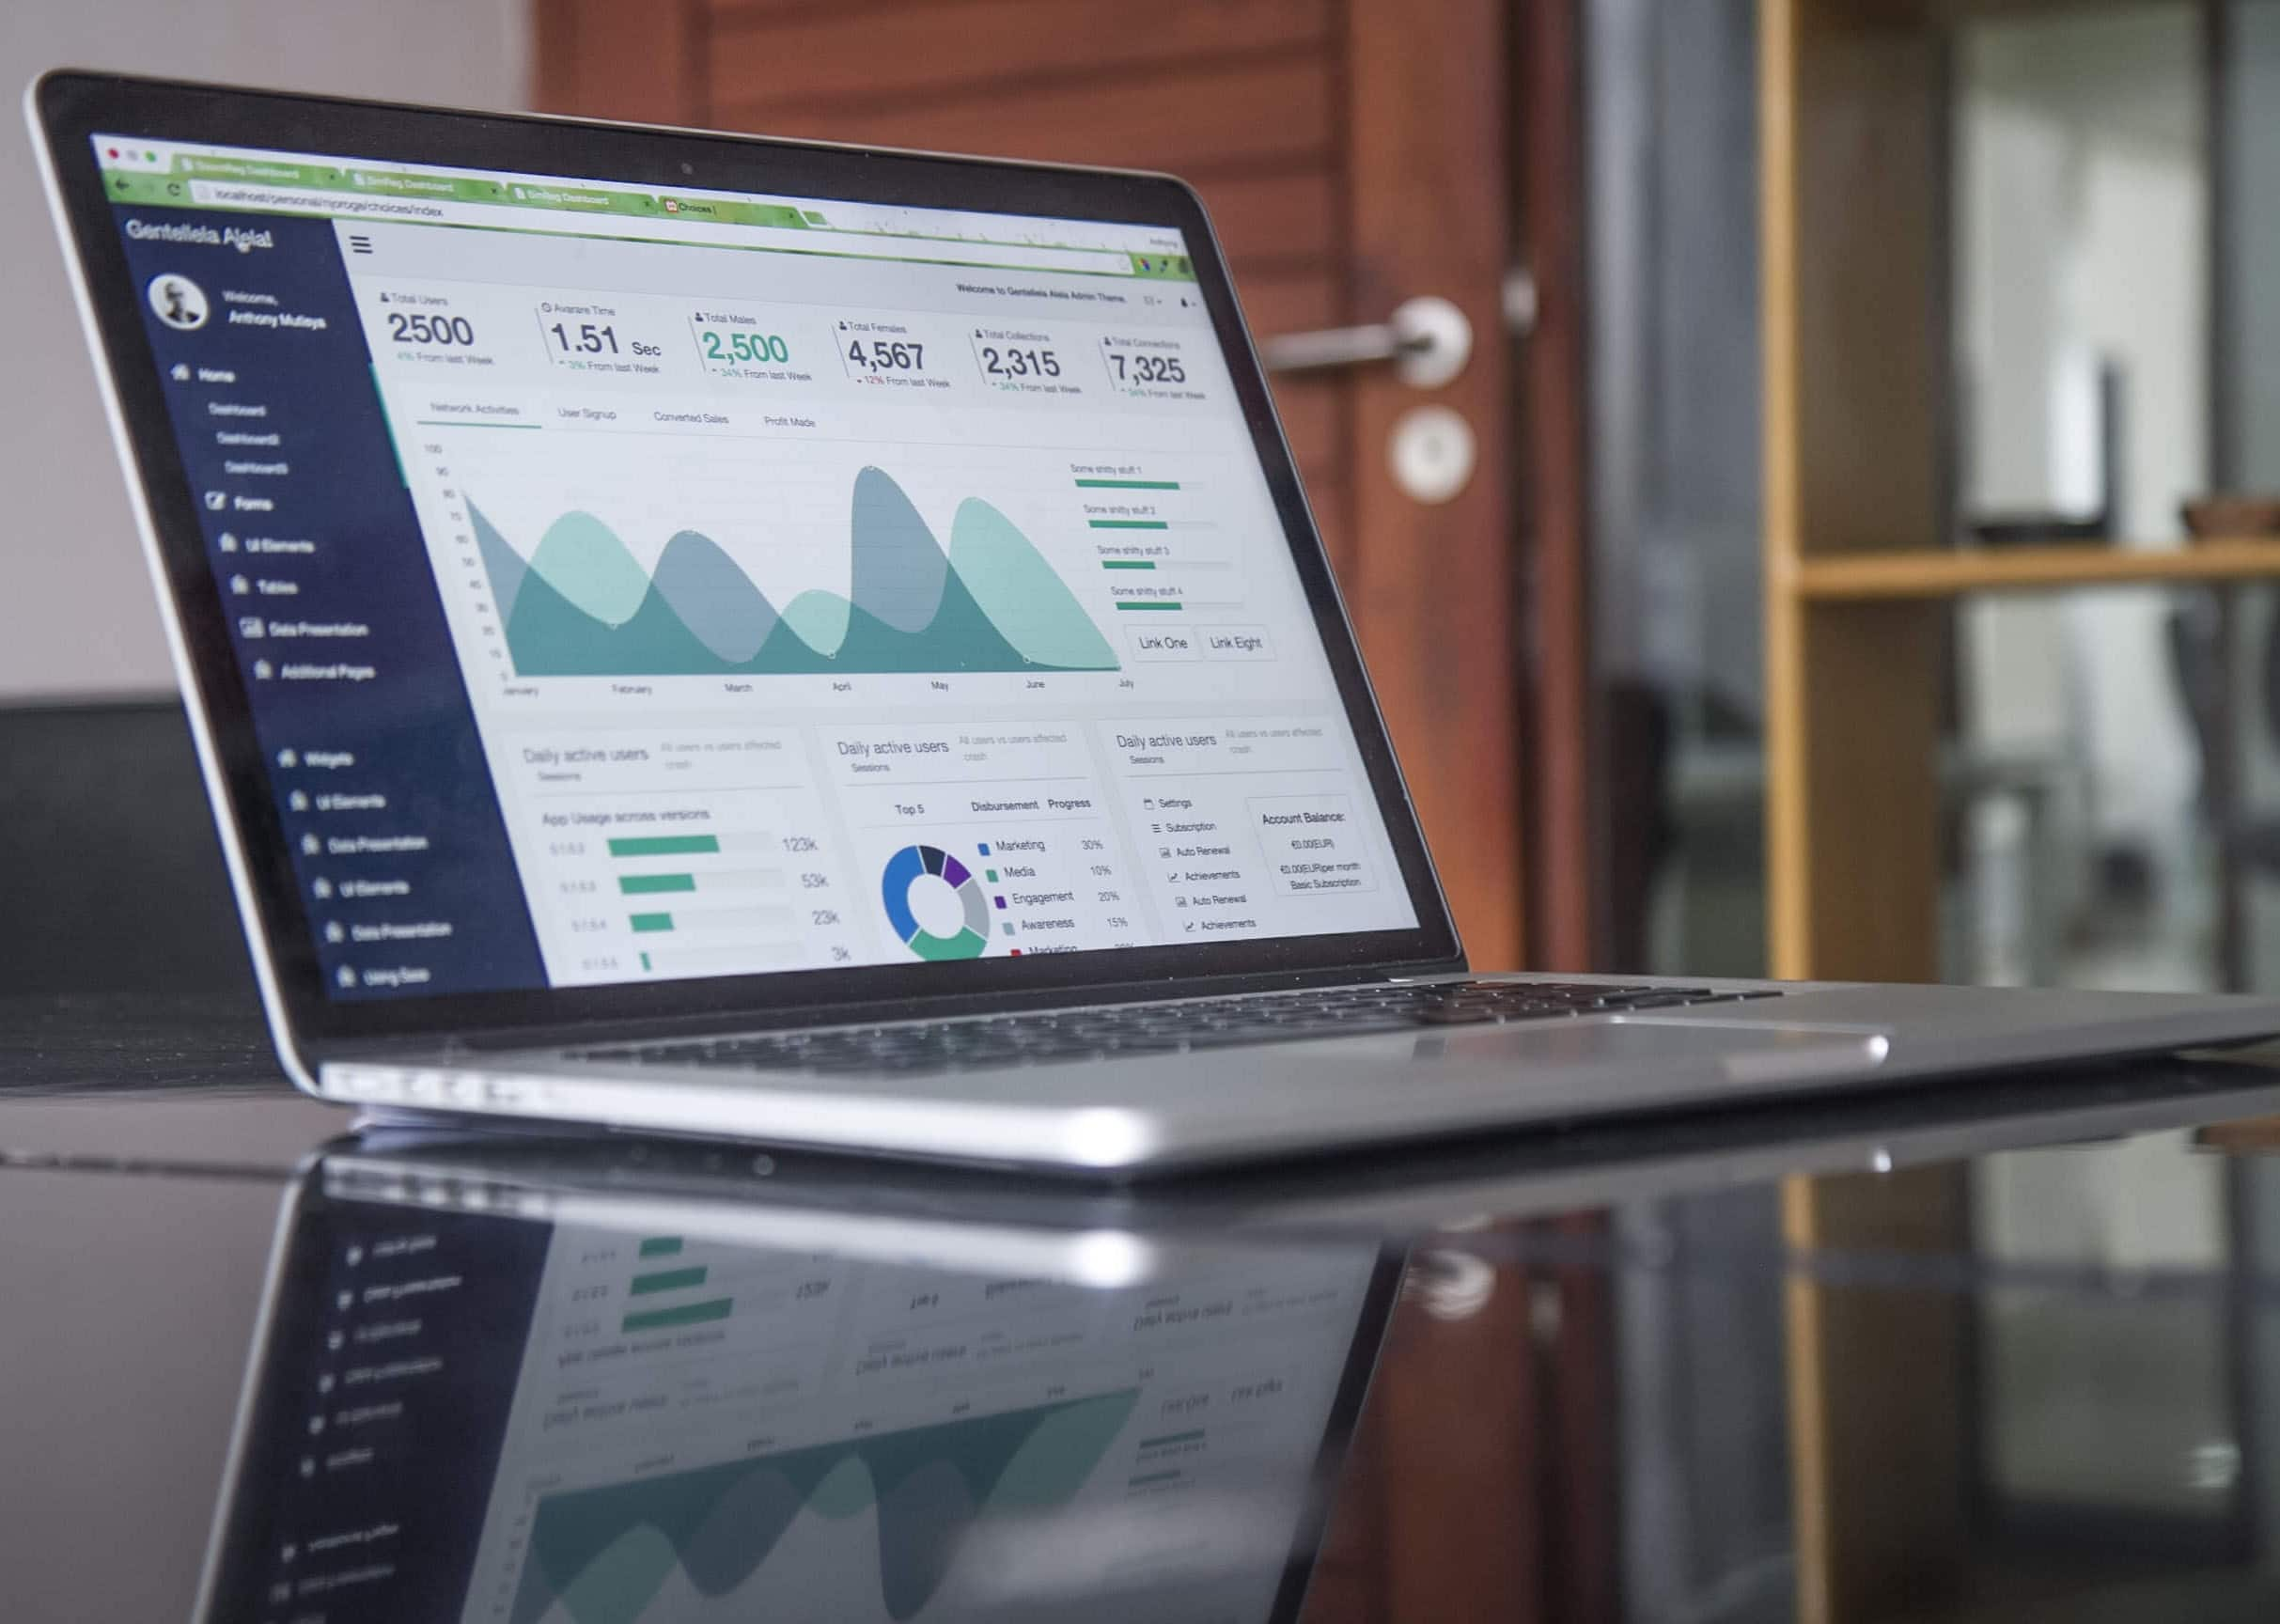 How to prepare a professional video resume - An image of a graph on a laptop